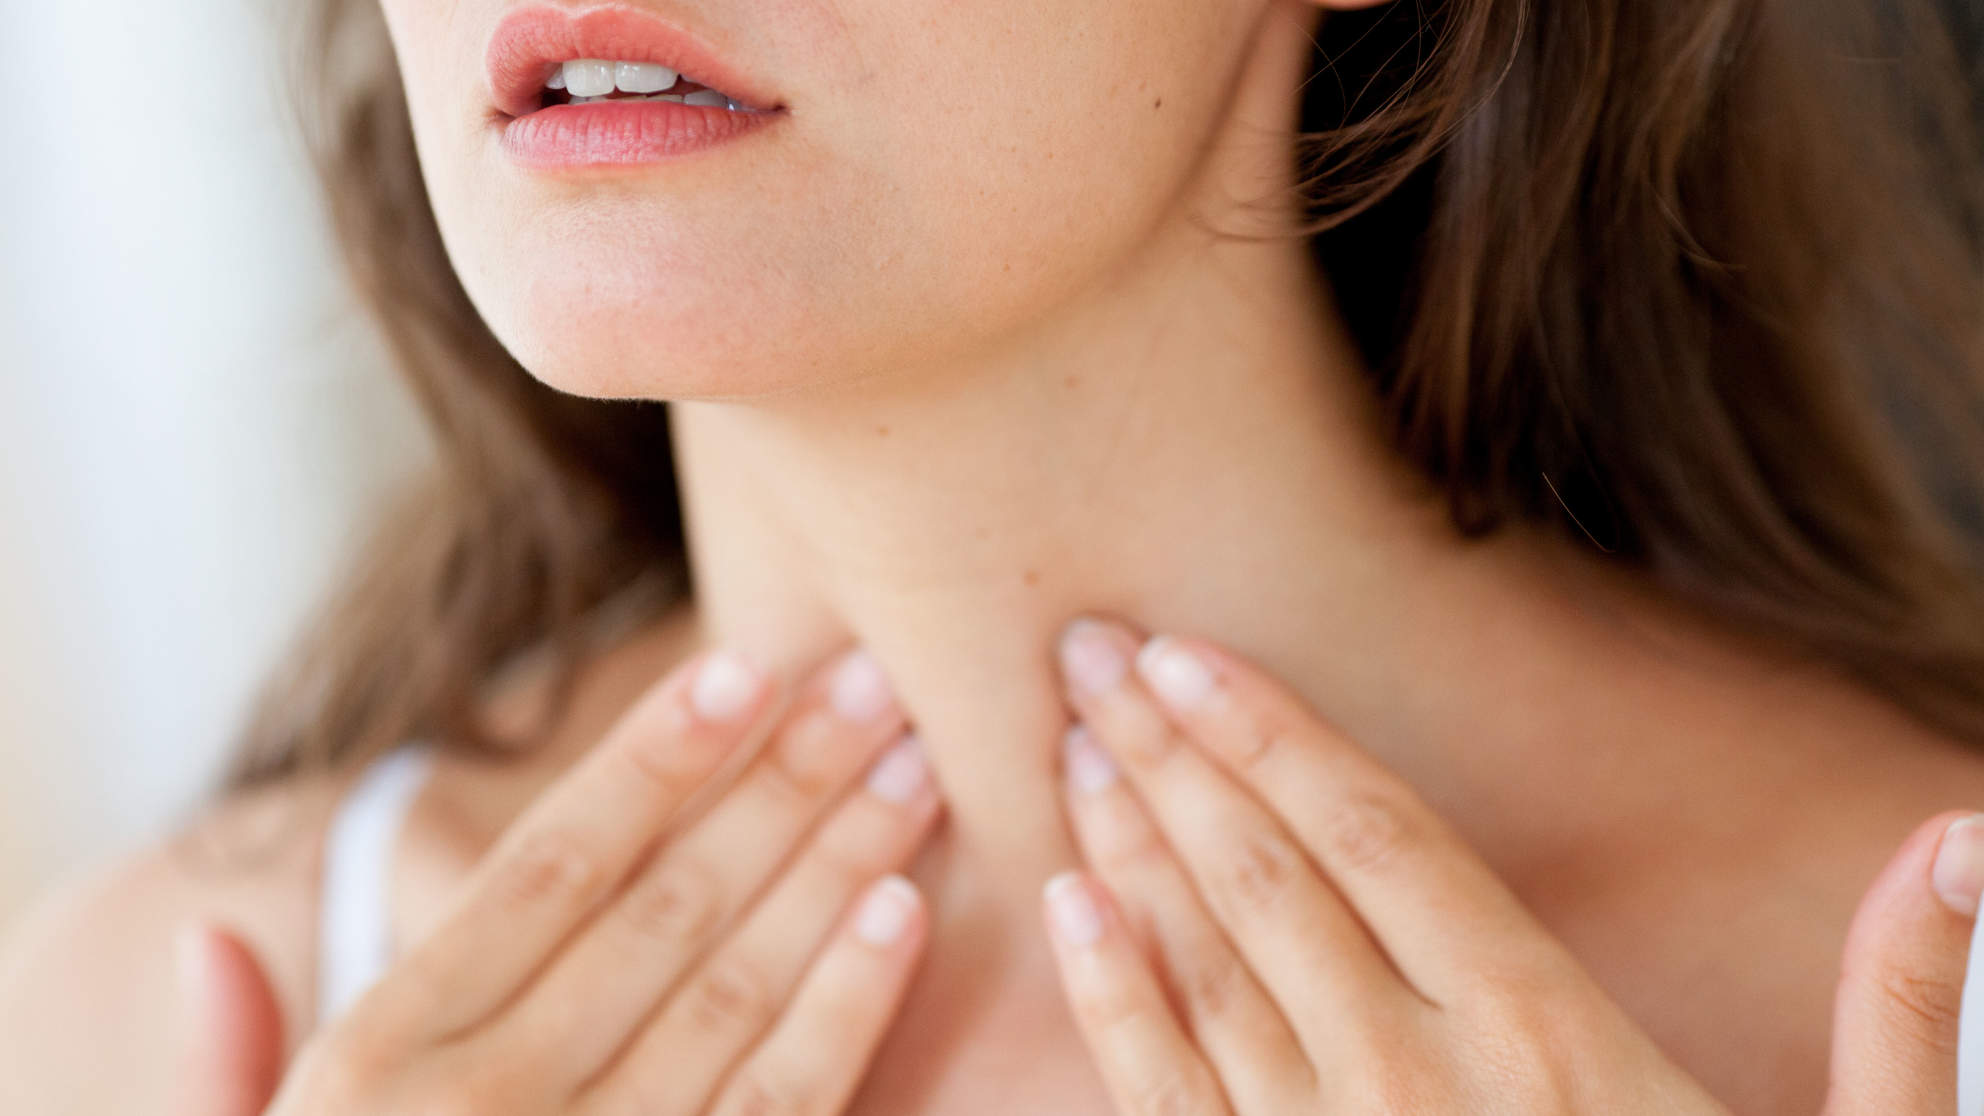 thyroid disorders common woman health neck